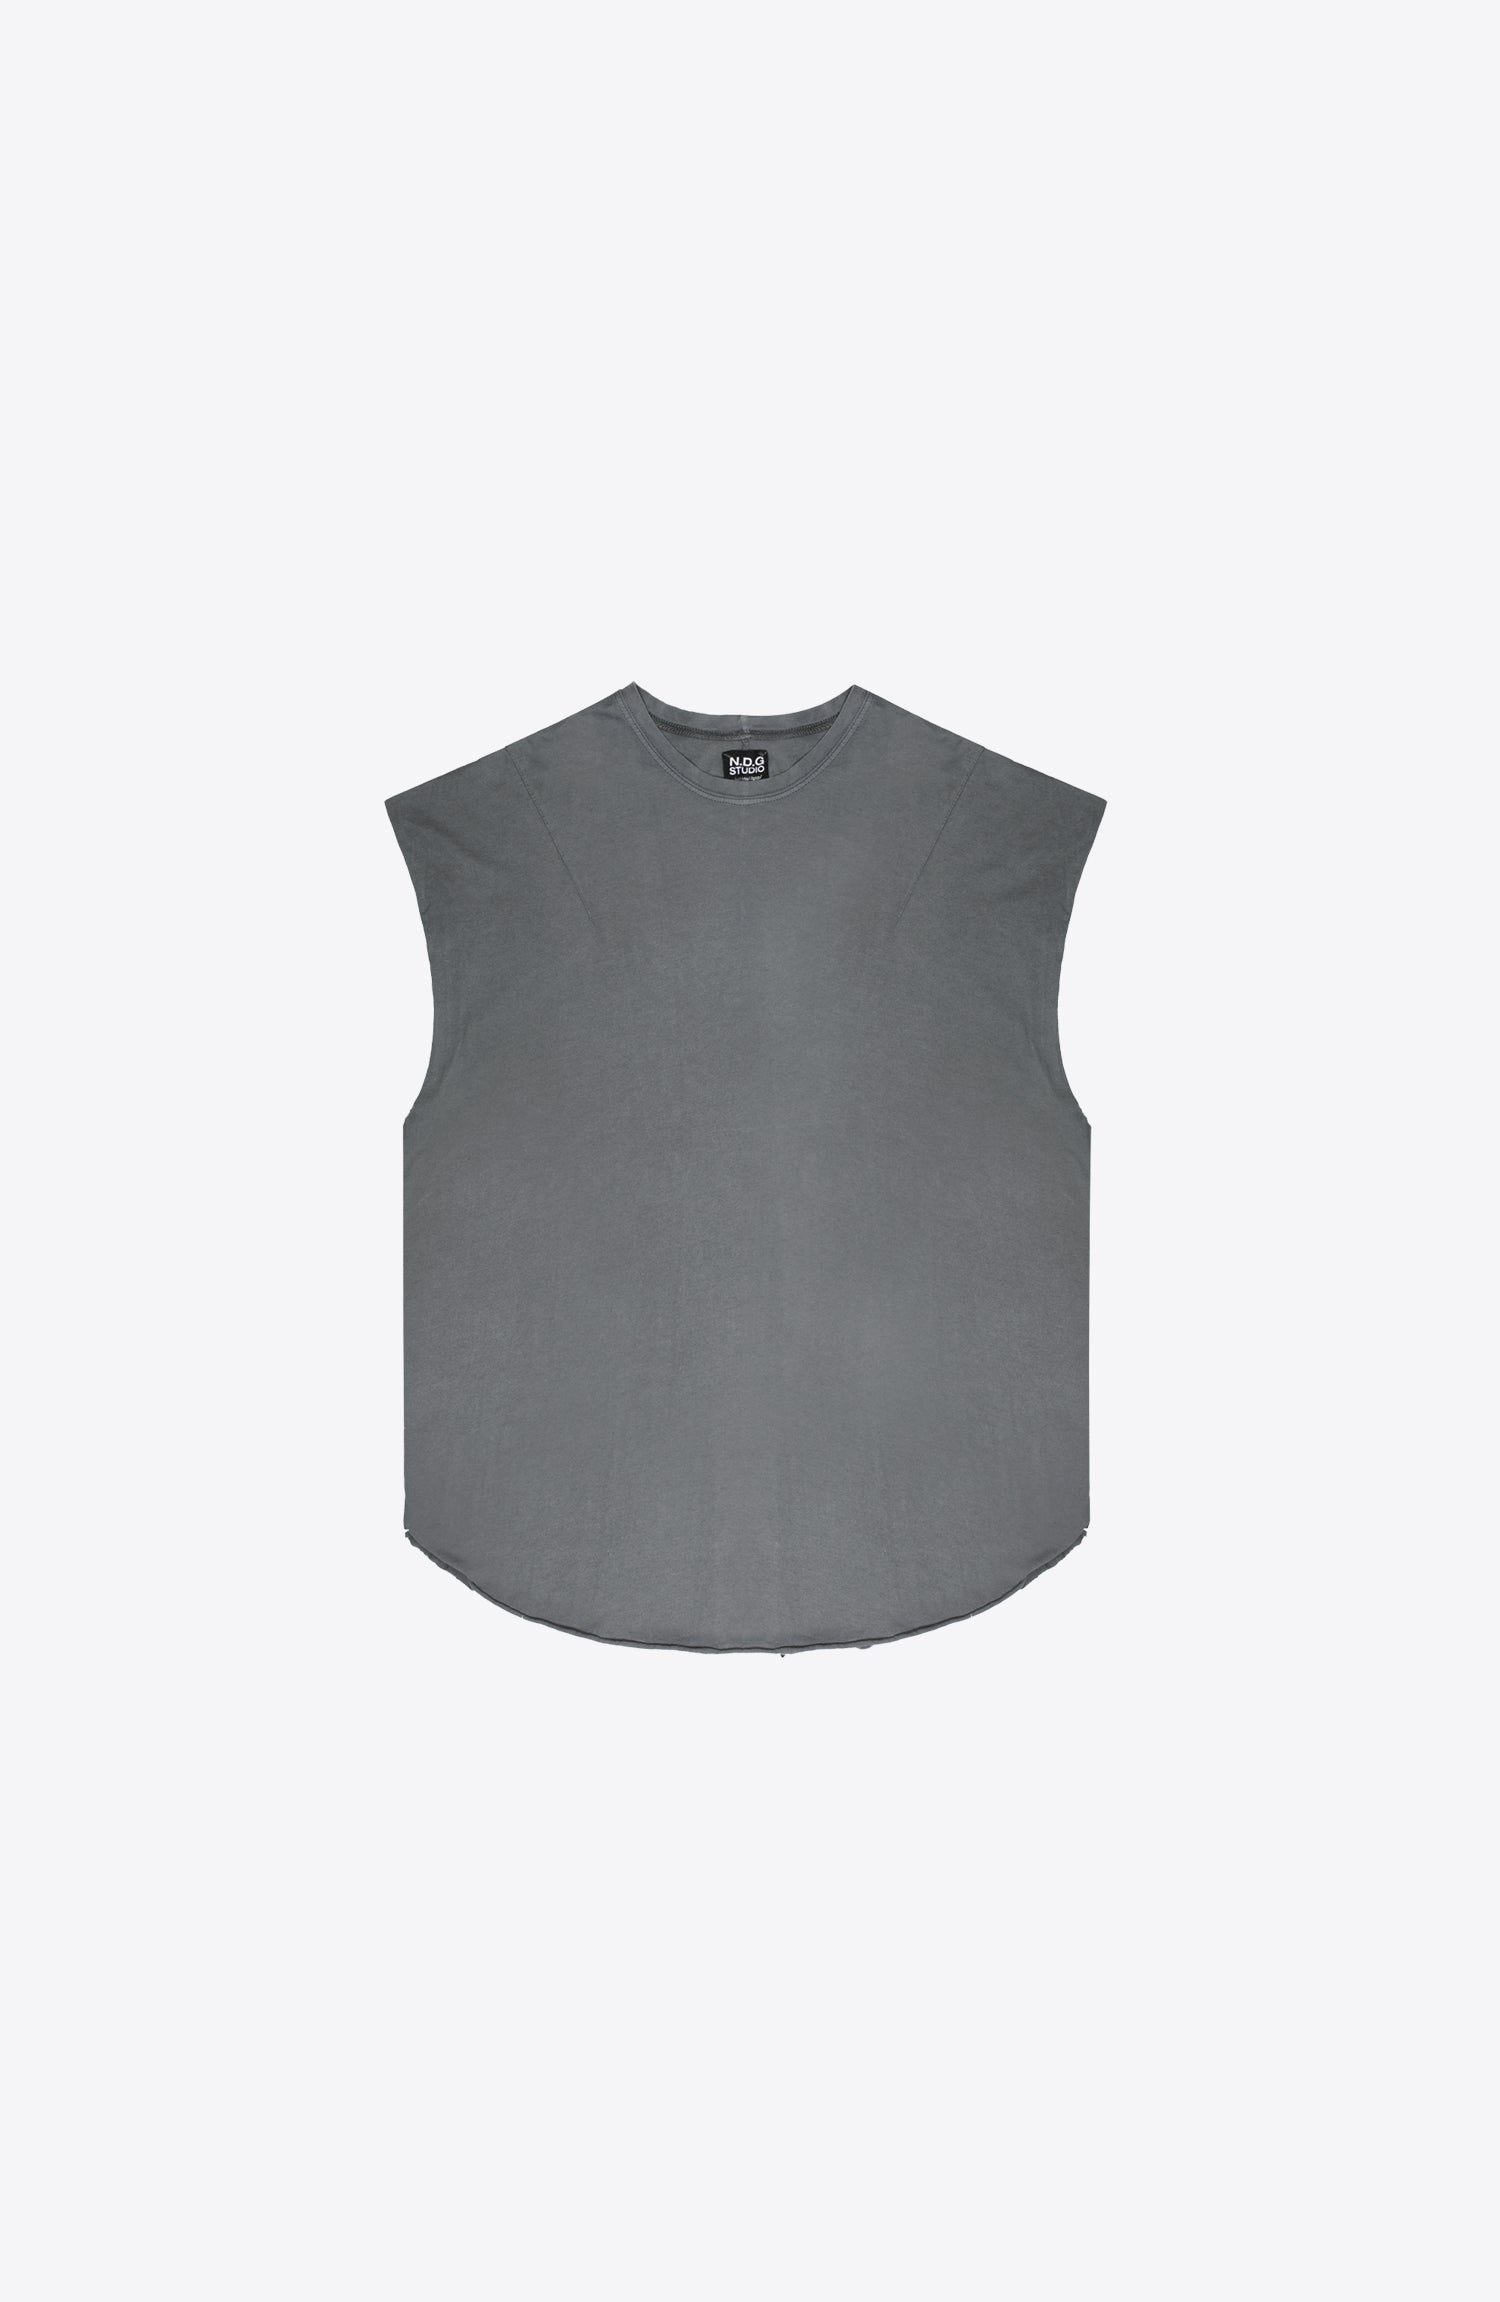 SLEEVELESS GREY TEE